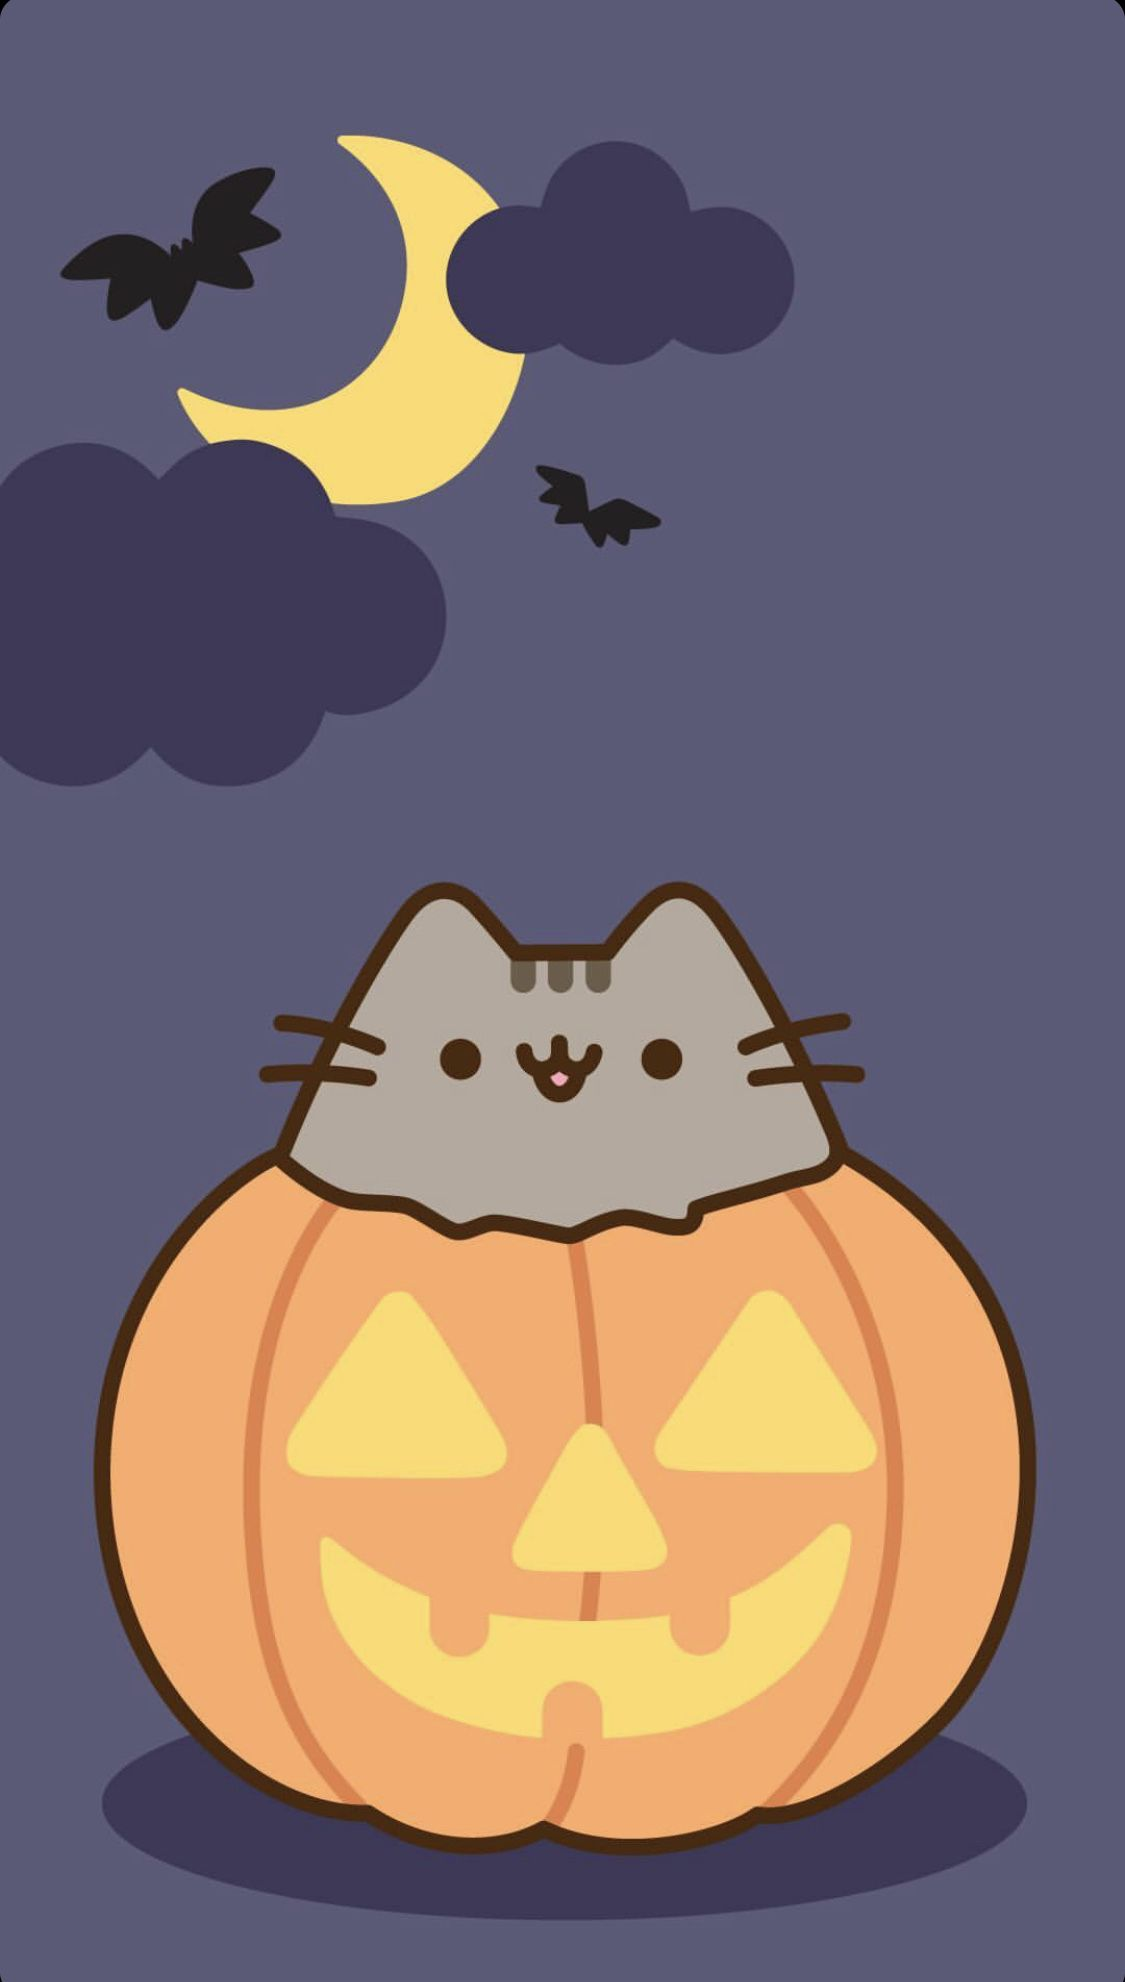 Pusheen Halloween Wallpaper Halloween Wallpaper Cute Halloween Wallpaper Pusheen Cute